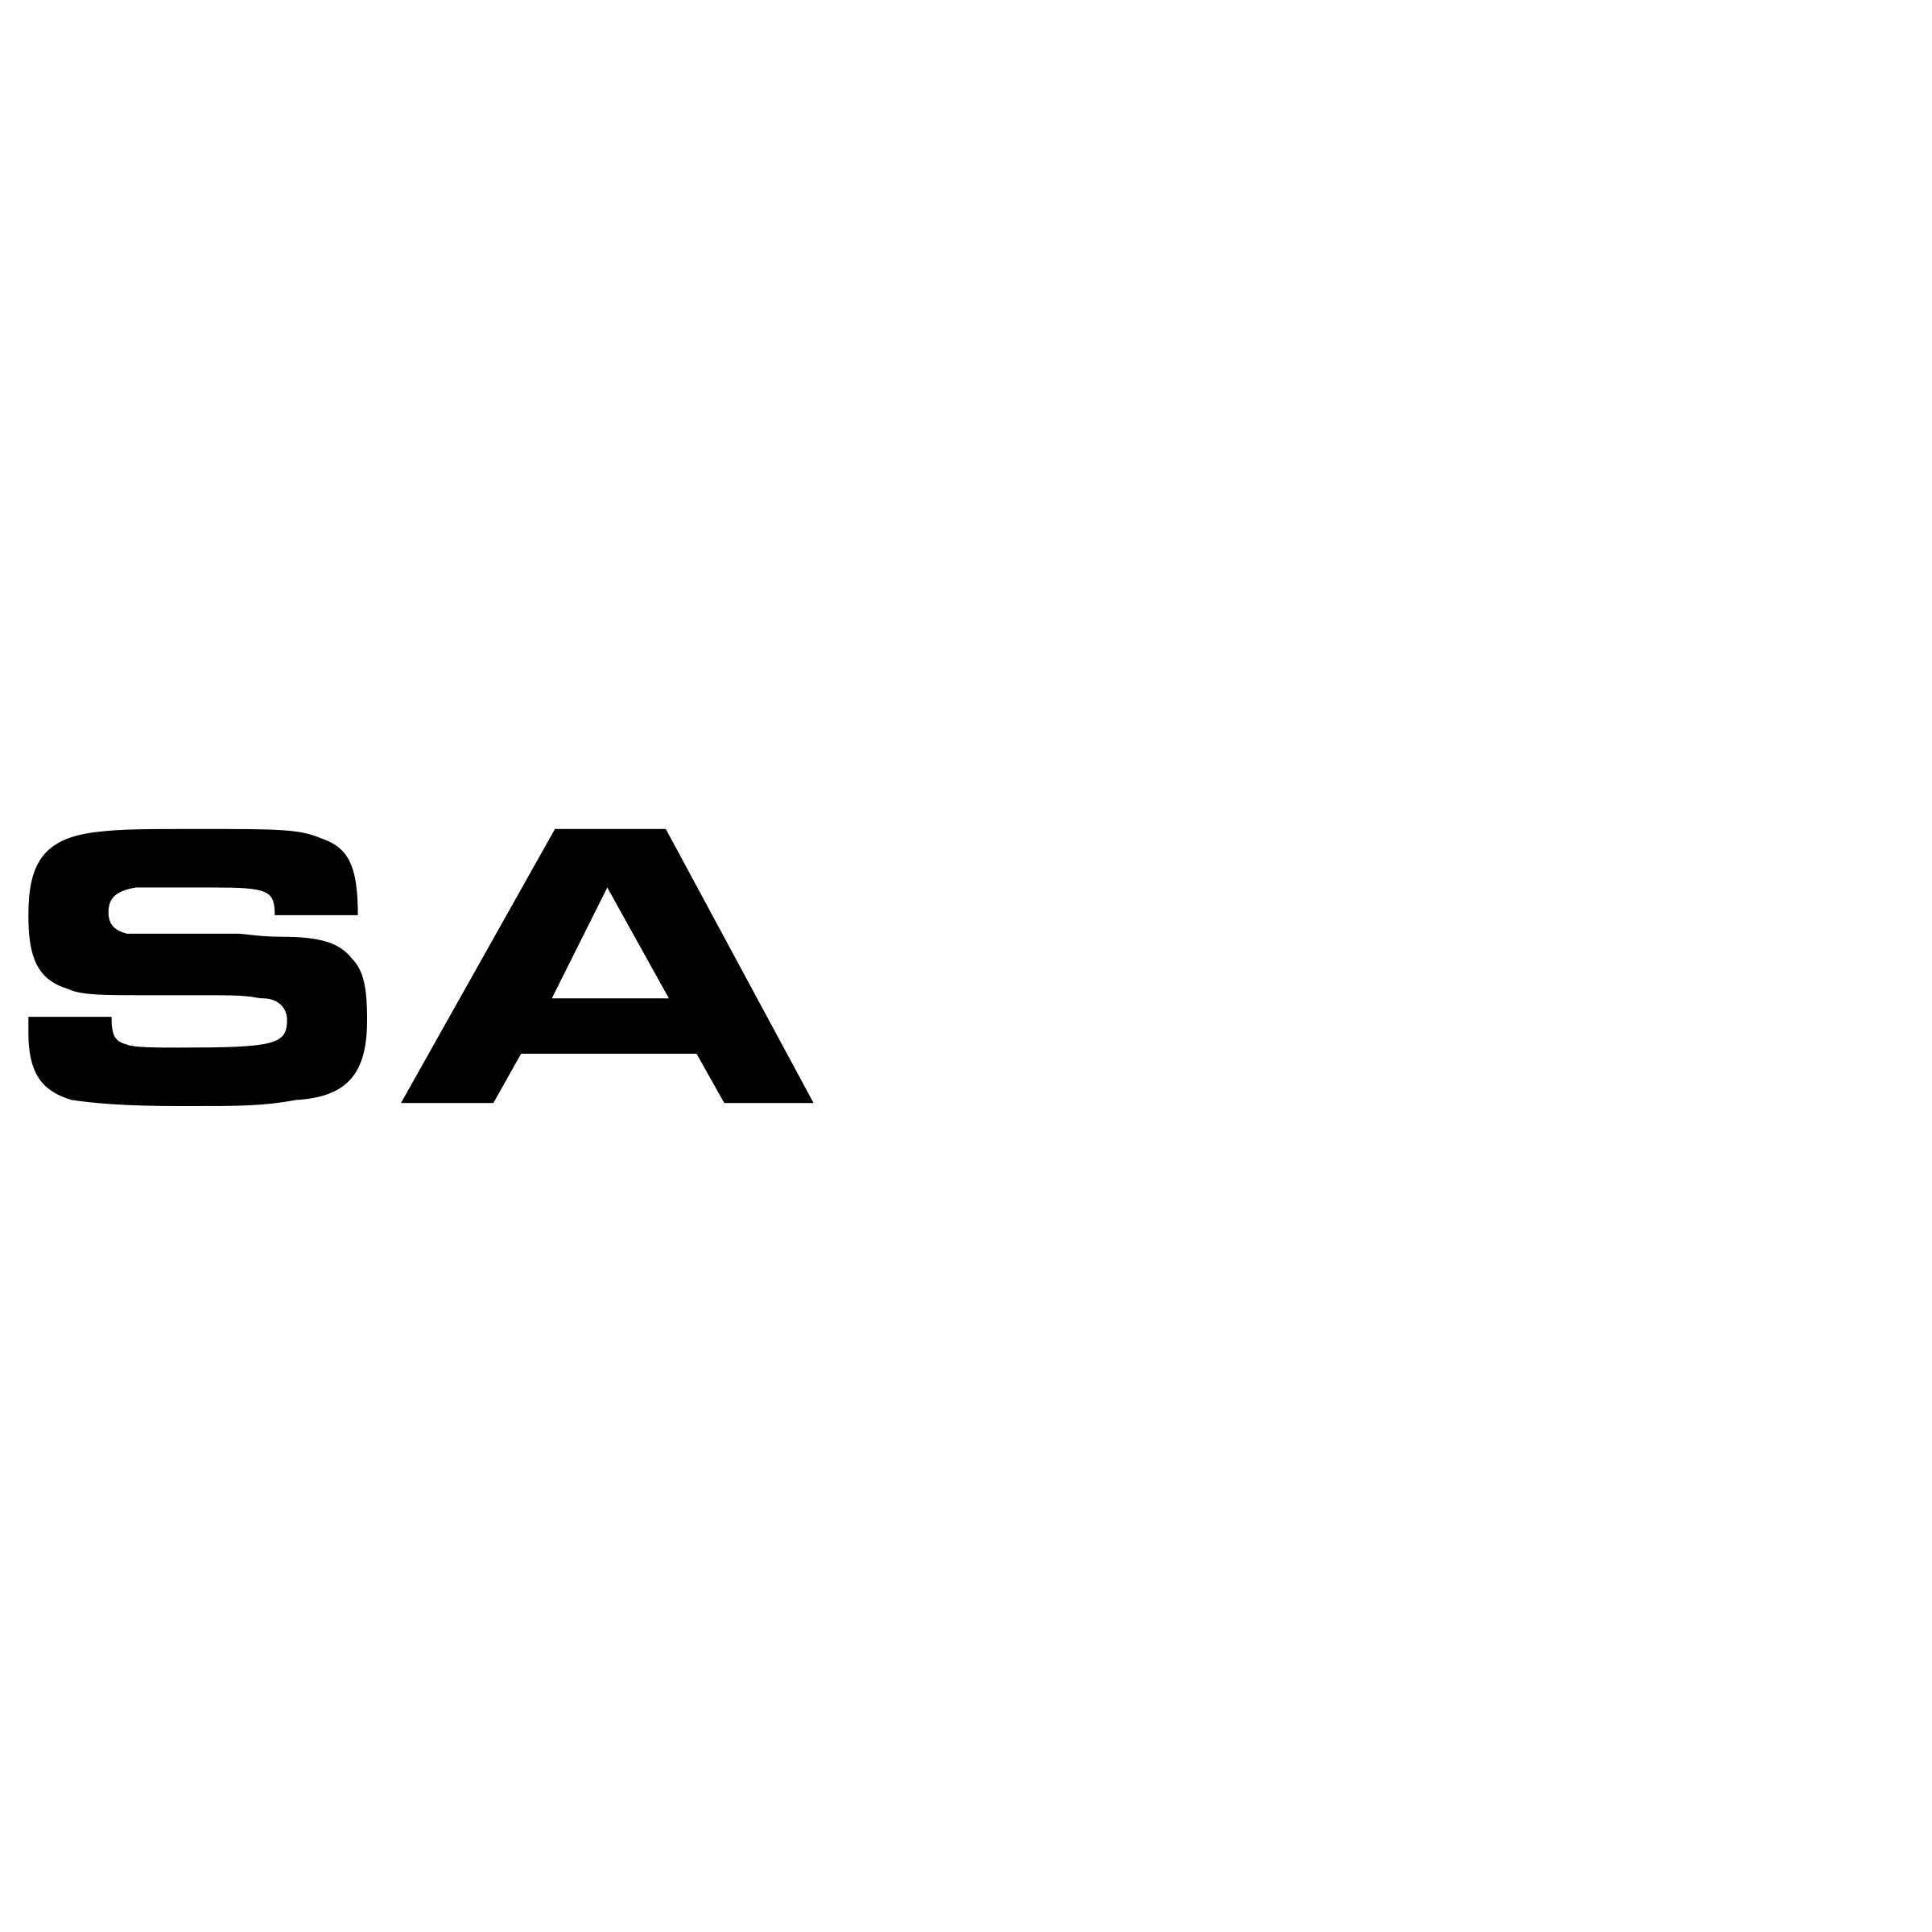 Sasa Logo - Sasa Logo PNG Transparent & SVG Vector - Freebie Supply